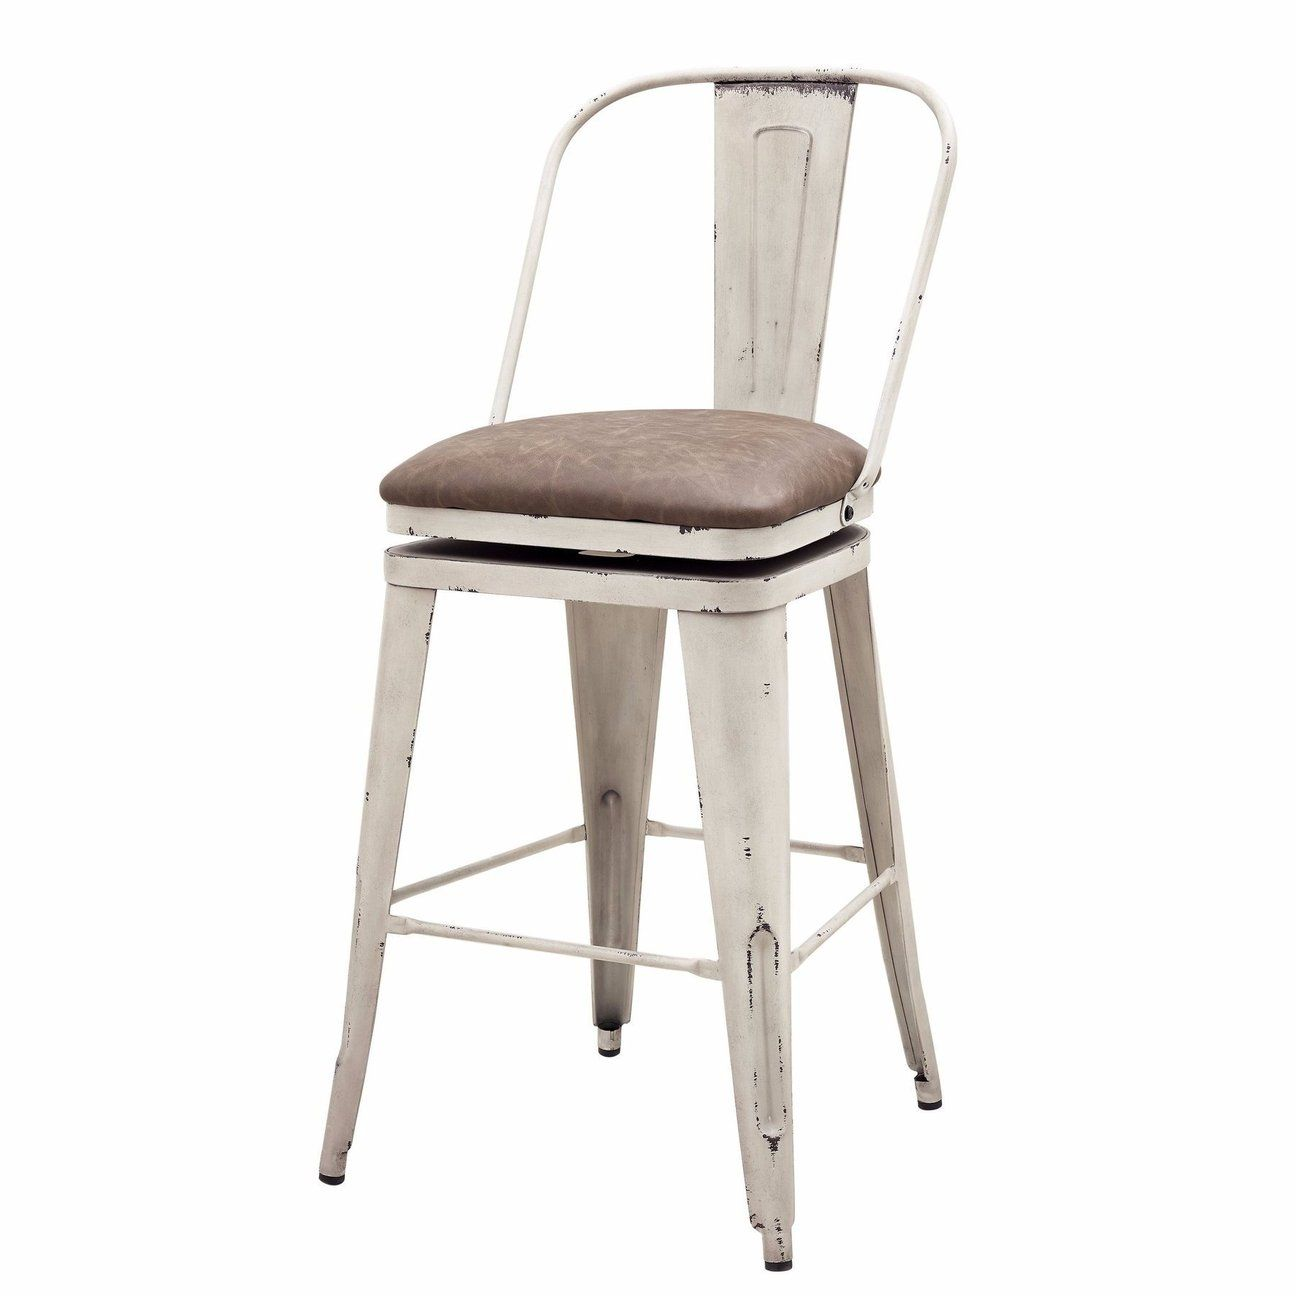 Antique White Metal Swivel Barstool Stool Parker Gwen Swivel Bar Stools Bar Stools Rustic Bar Stools